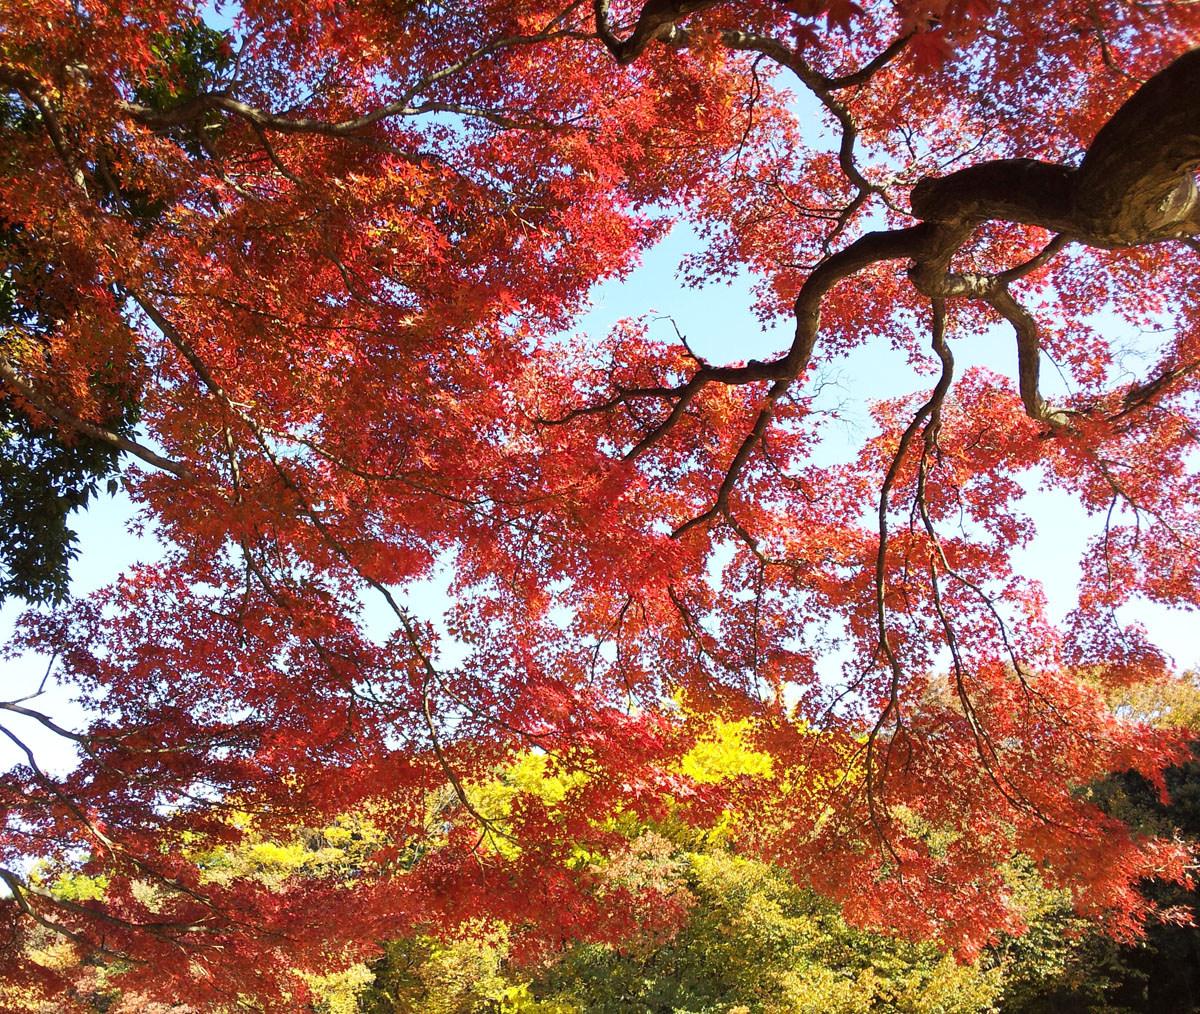 Autumn leaves in Kinuta Park - Nov. 23, 2013